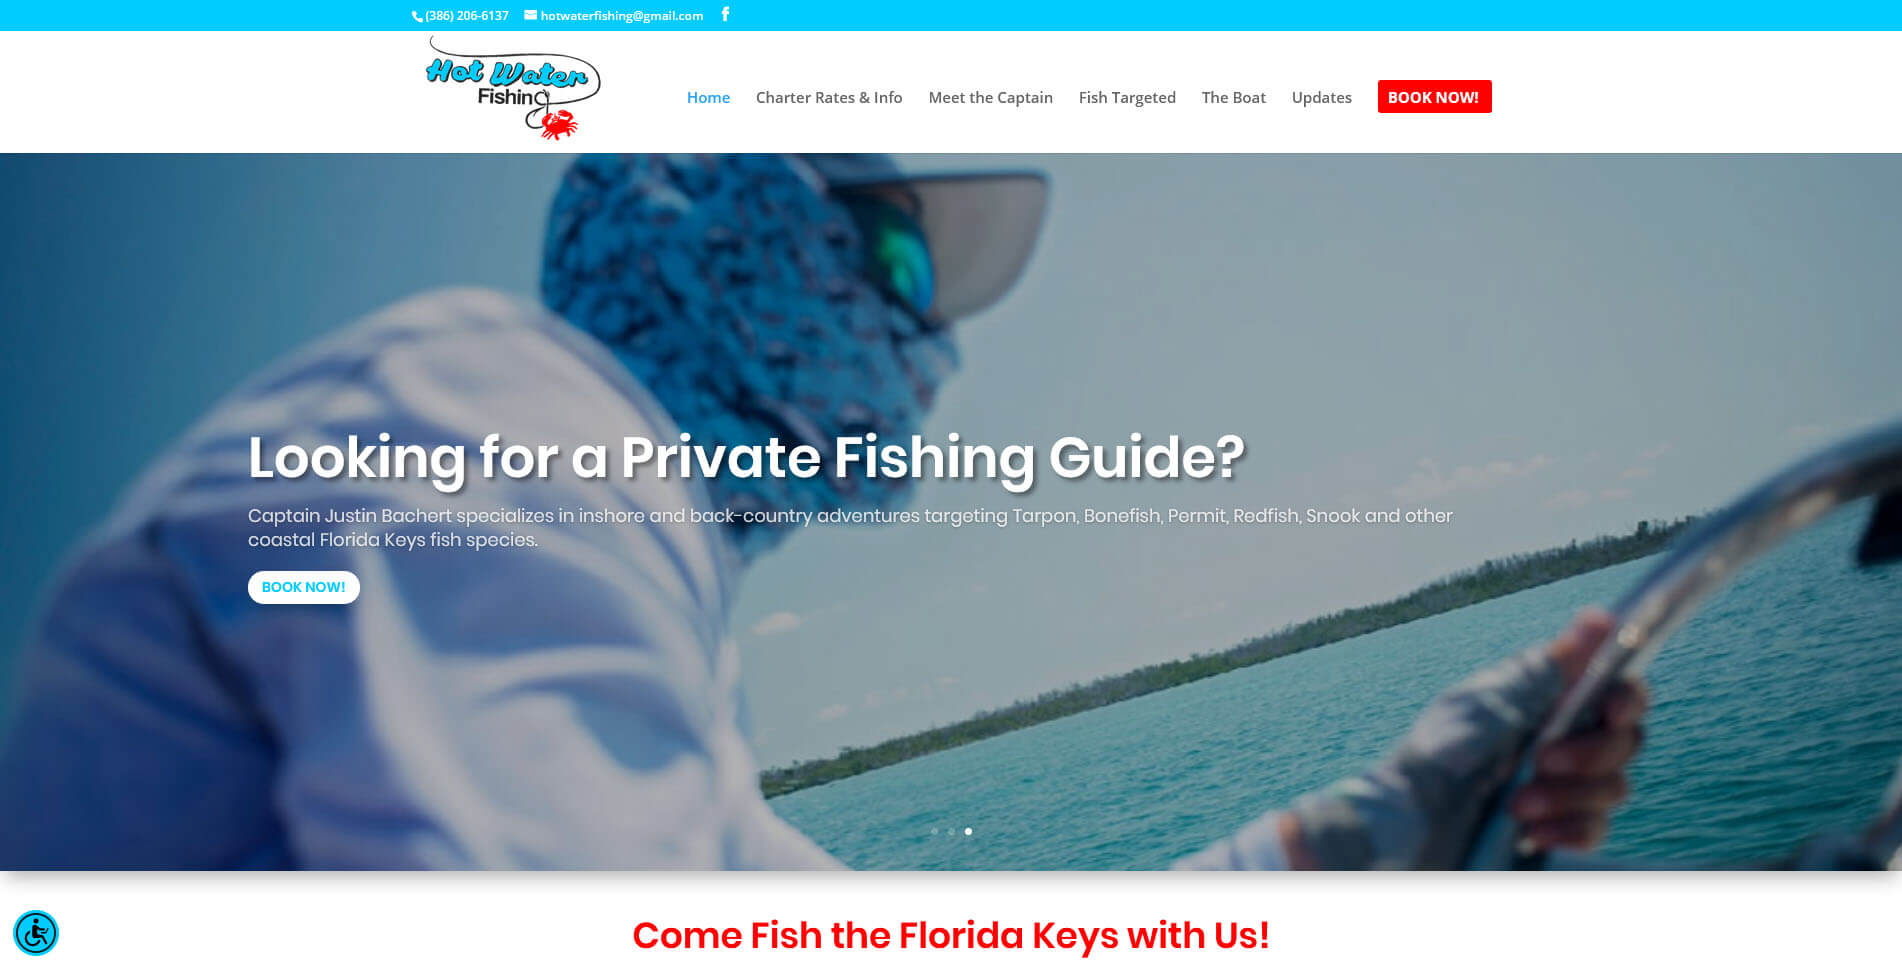 An image of the hot water fishing website, created by Not Fade Away Marketing of South Florida.